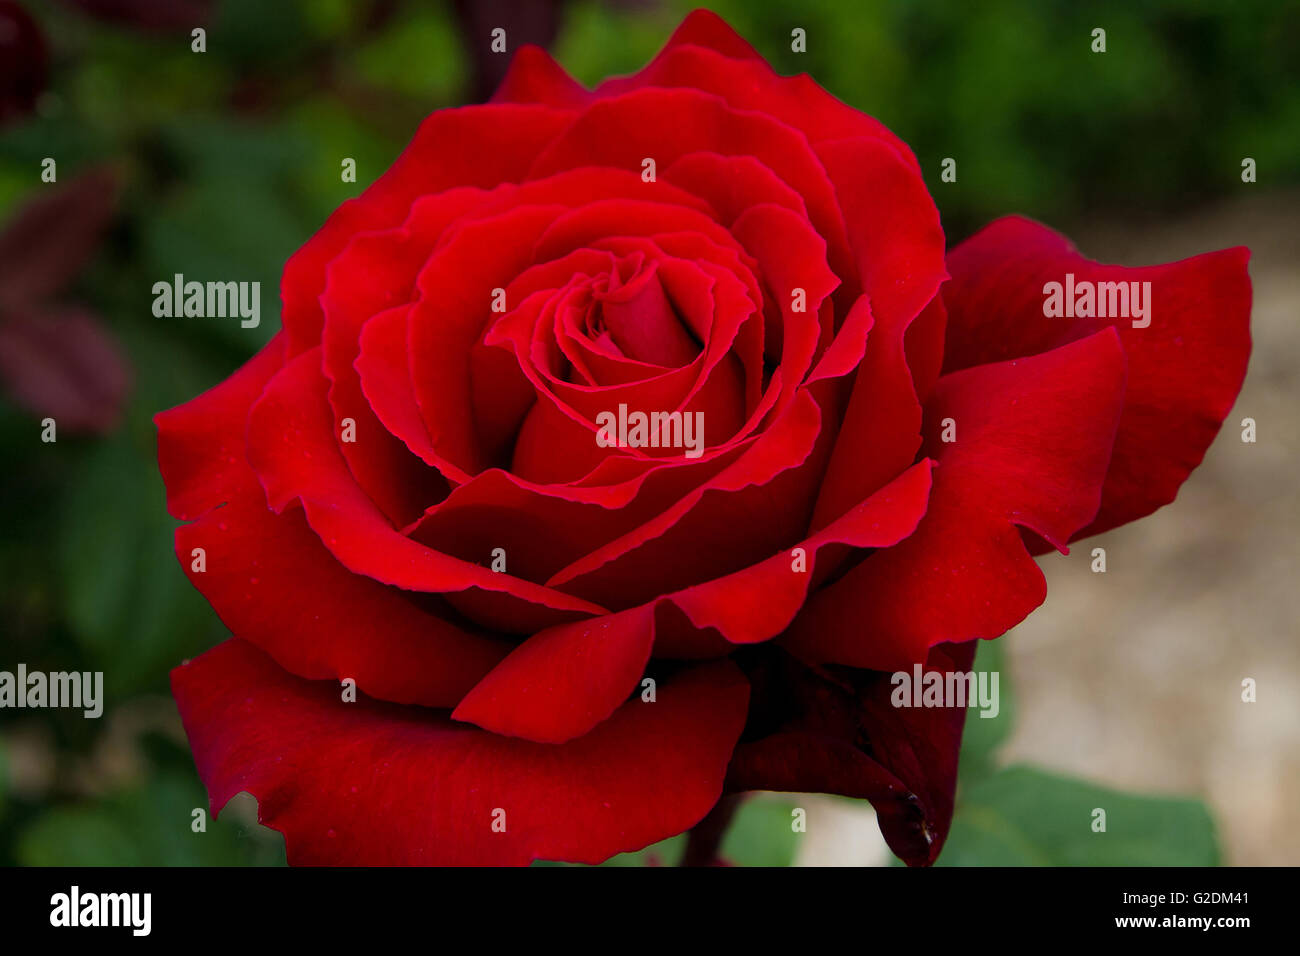 Single Red Rose Flower Stock Images: Rose Red Roses Background Flower Isolated Petal Valentine